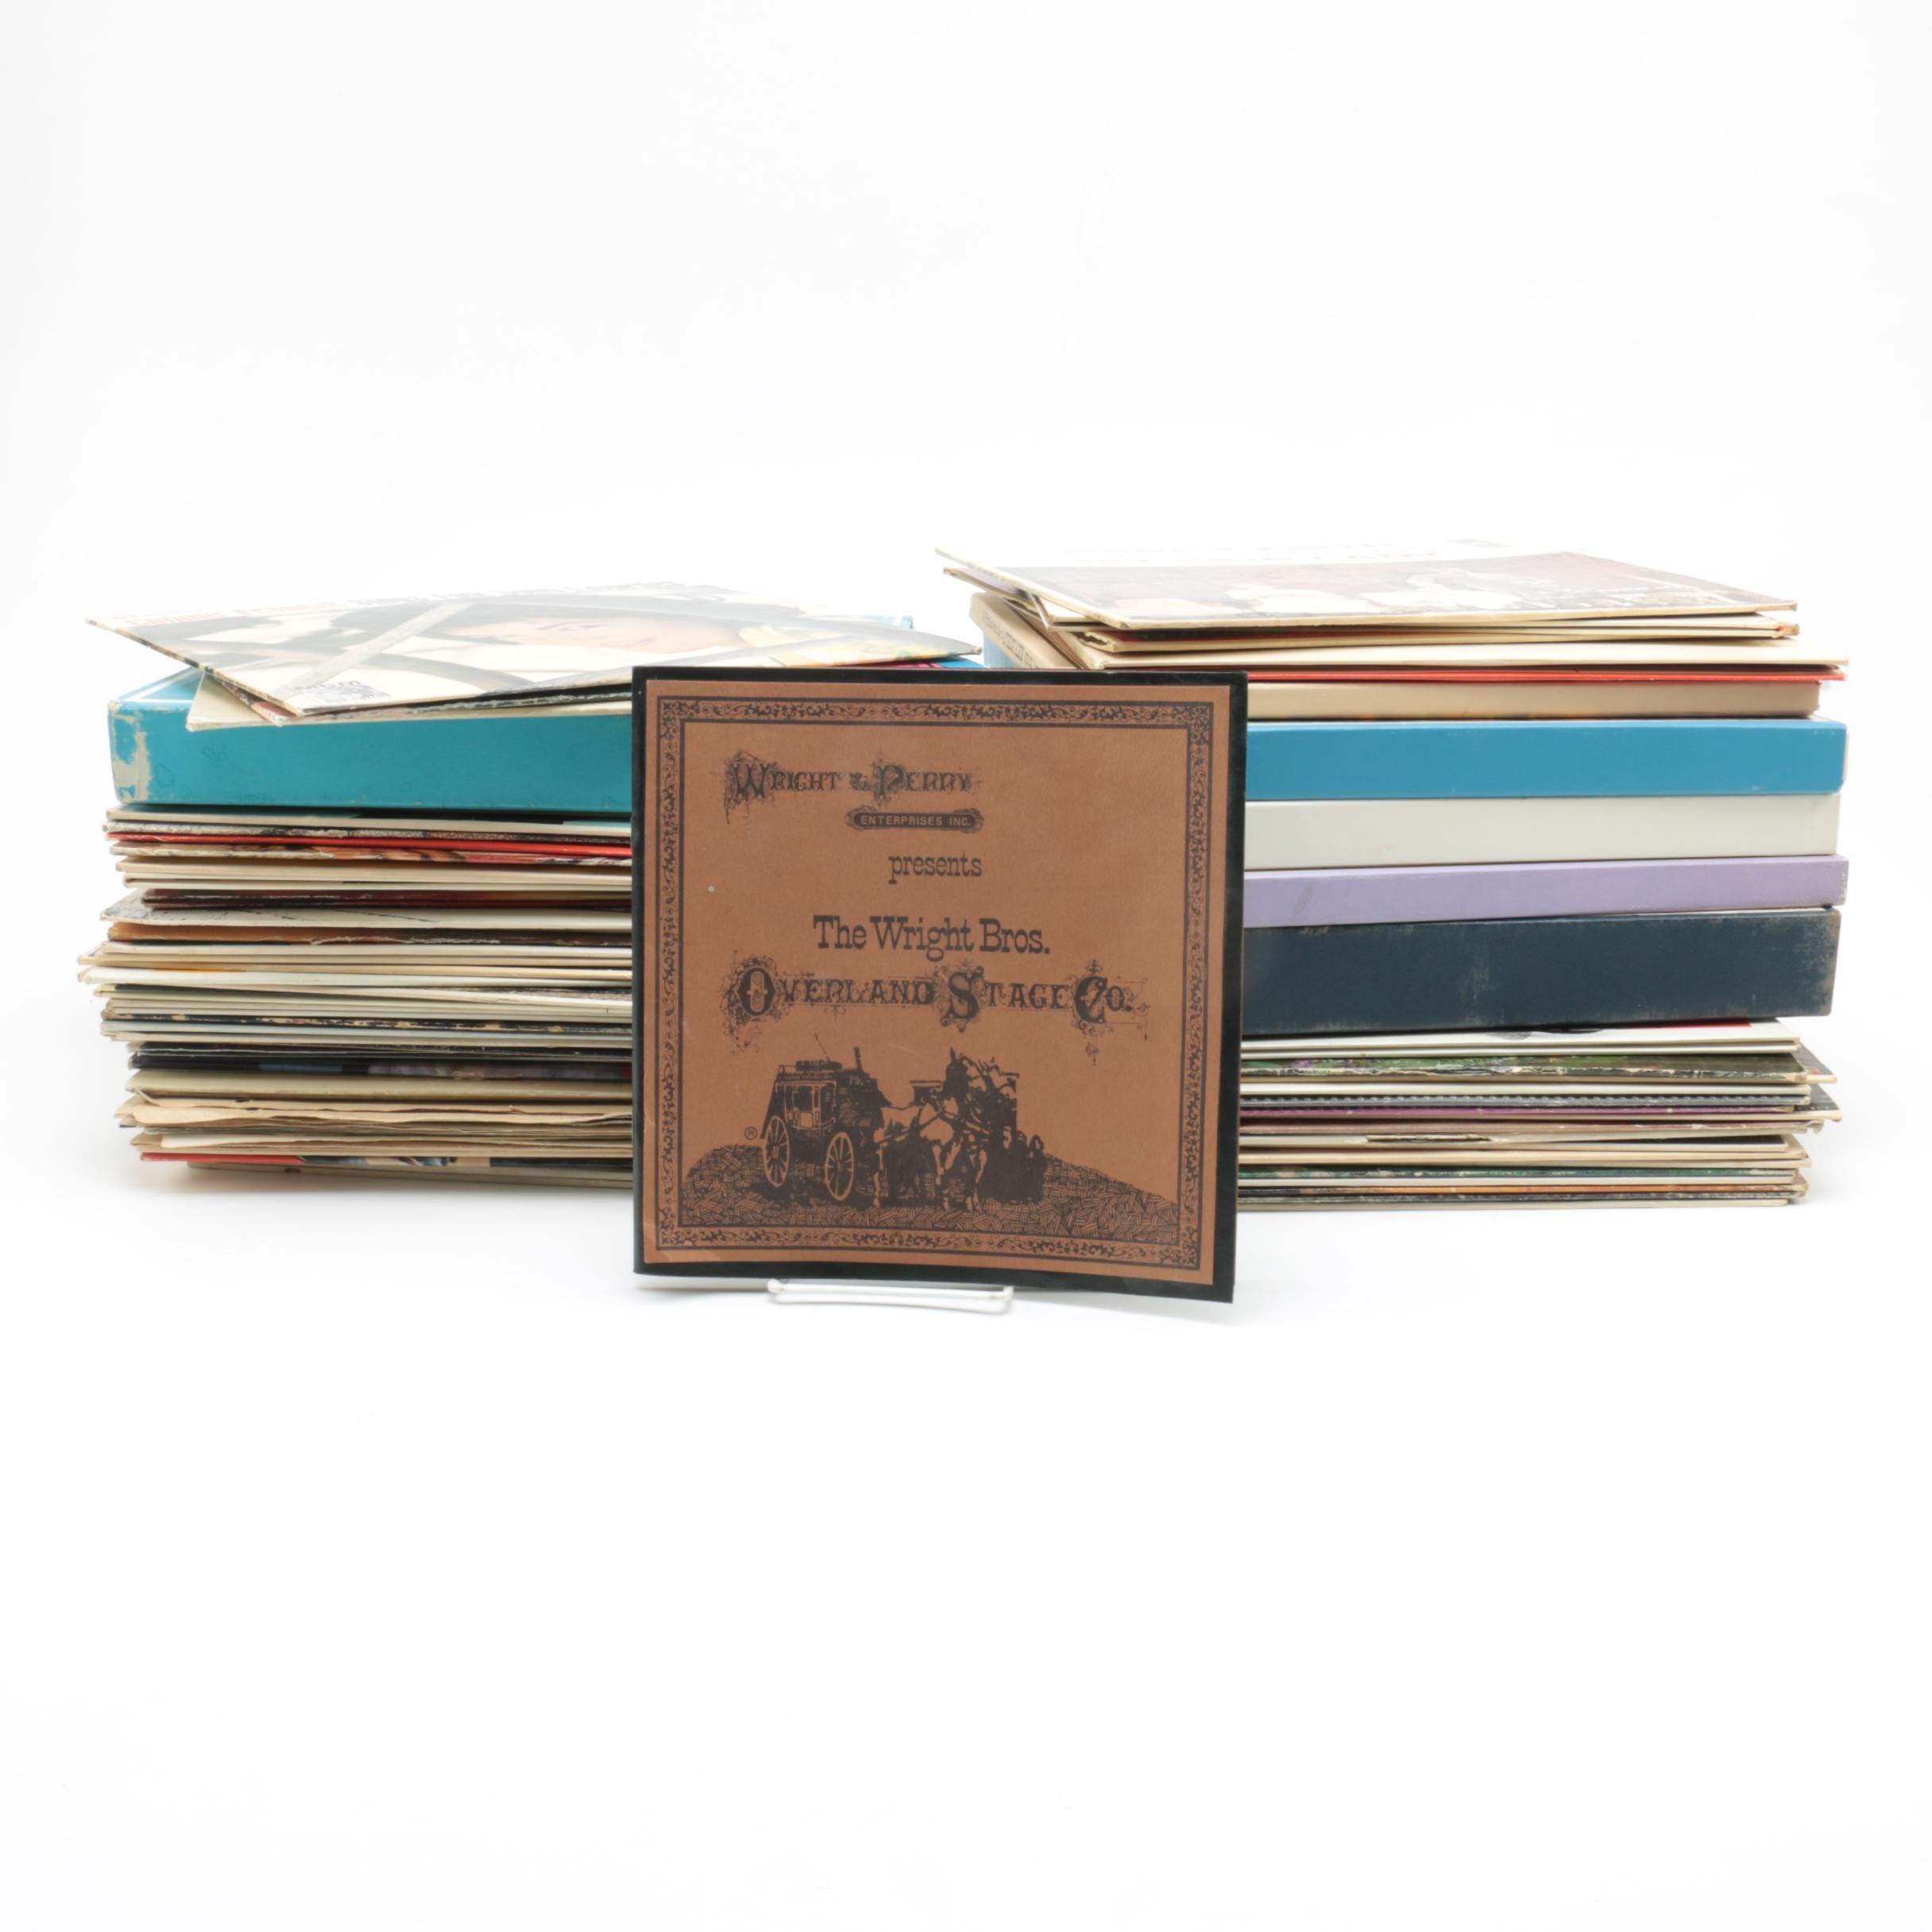 Classical, Folk, and Broadway Records with Boxed Sets Including Cole Porter